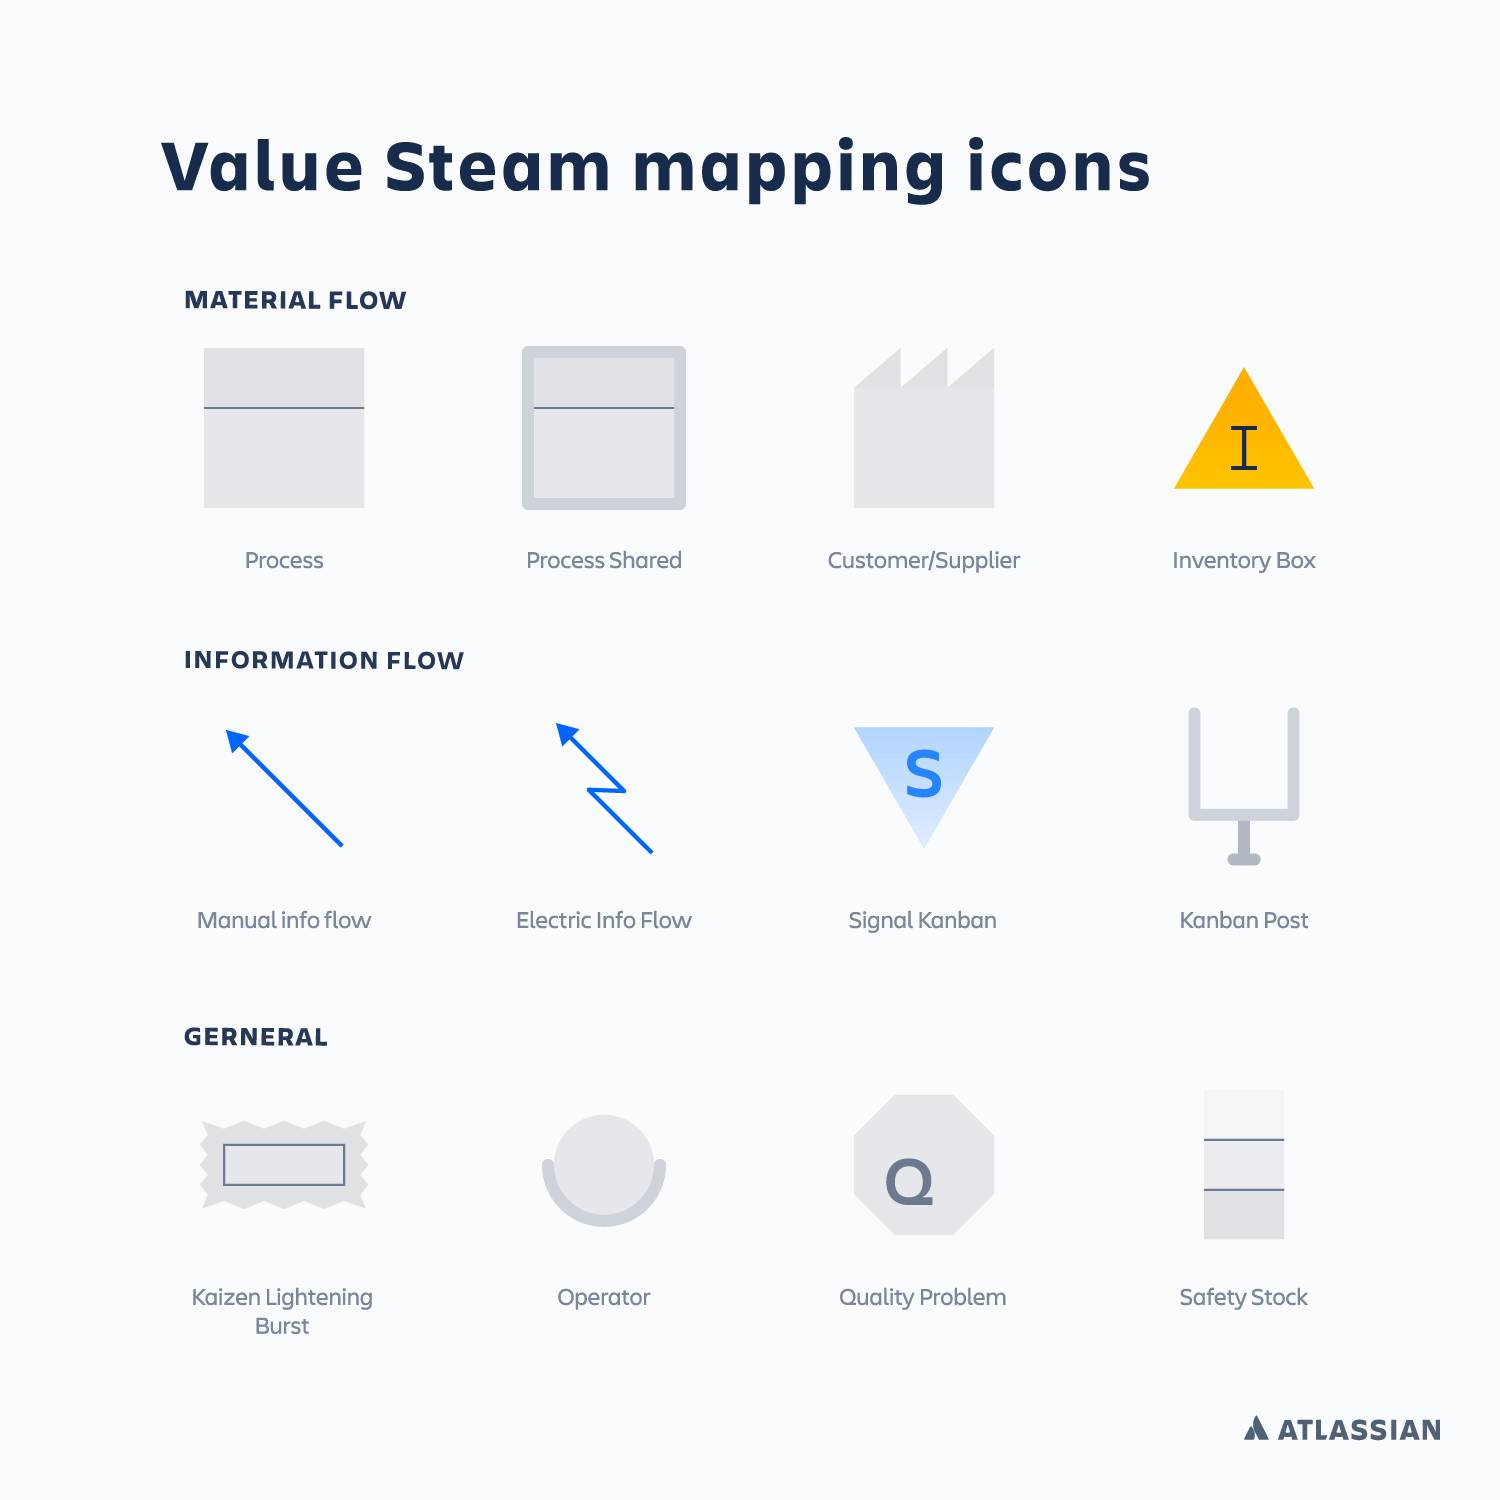 Value Stream Map Symbols And Meaning